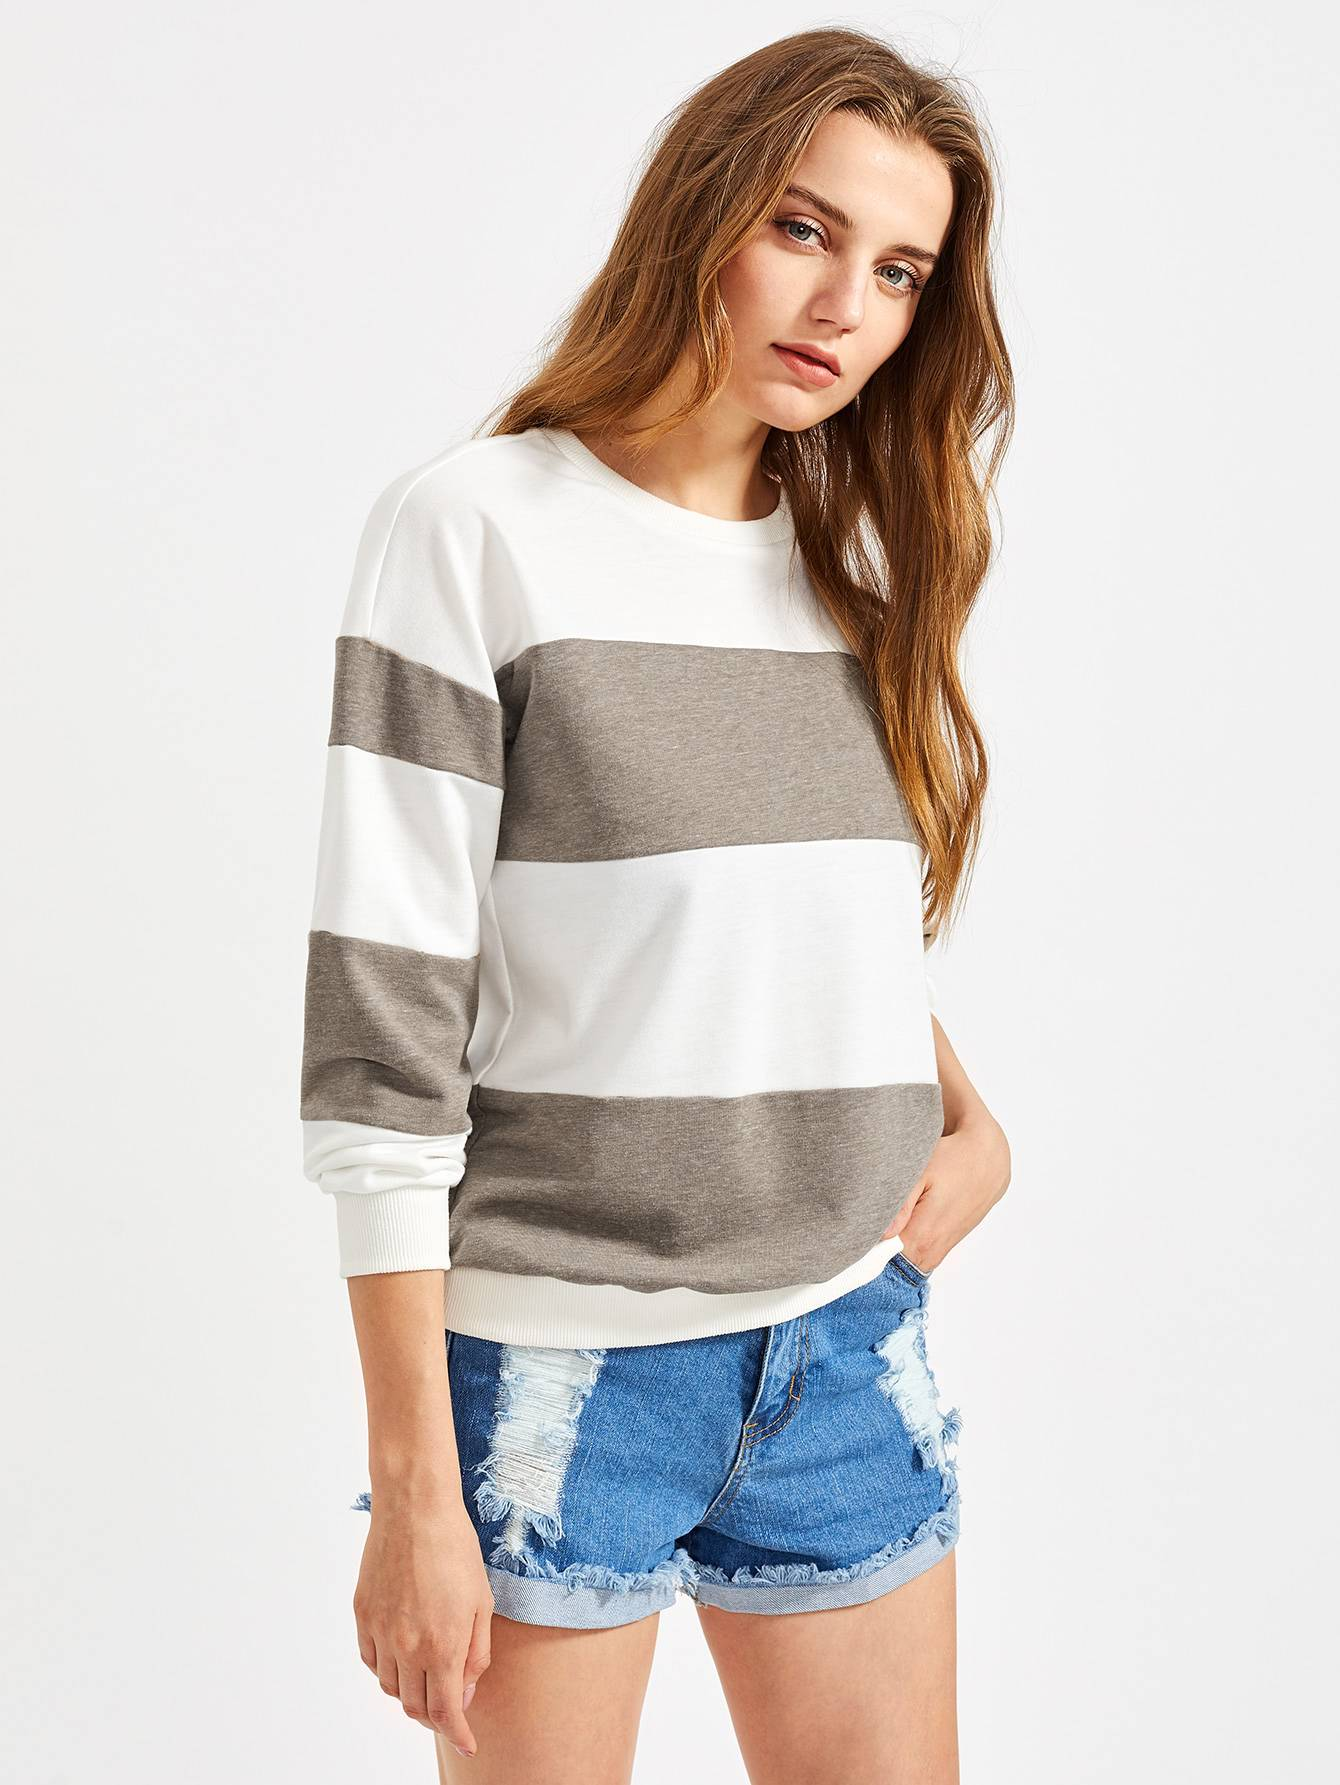 SHEIN CUT AND SEW PULLOVER ($16)